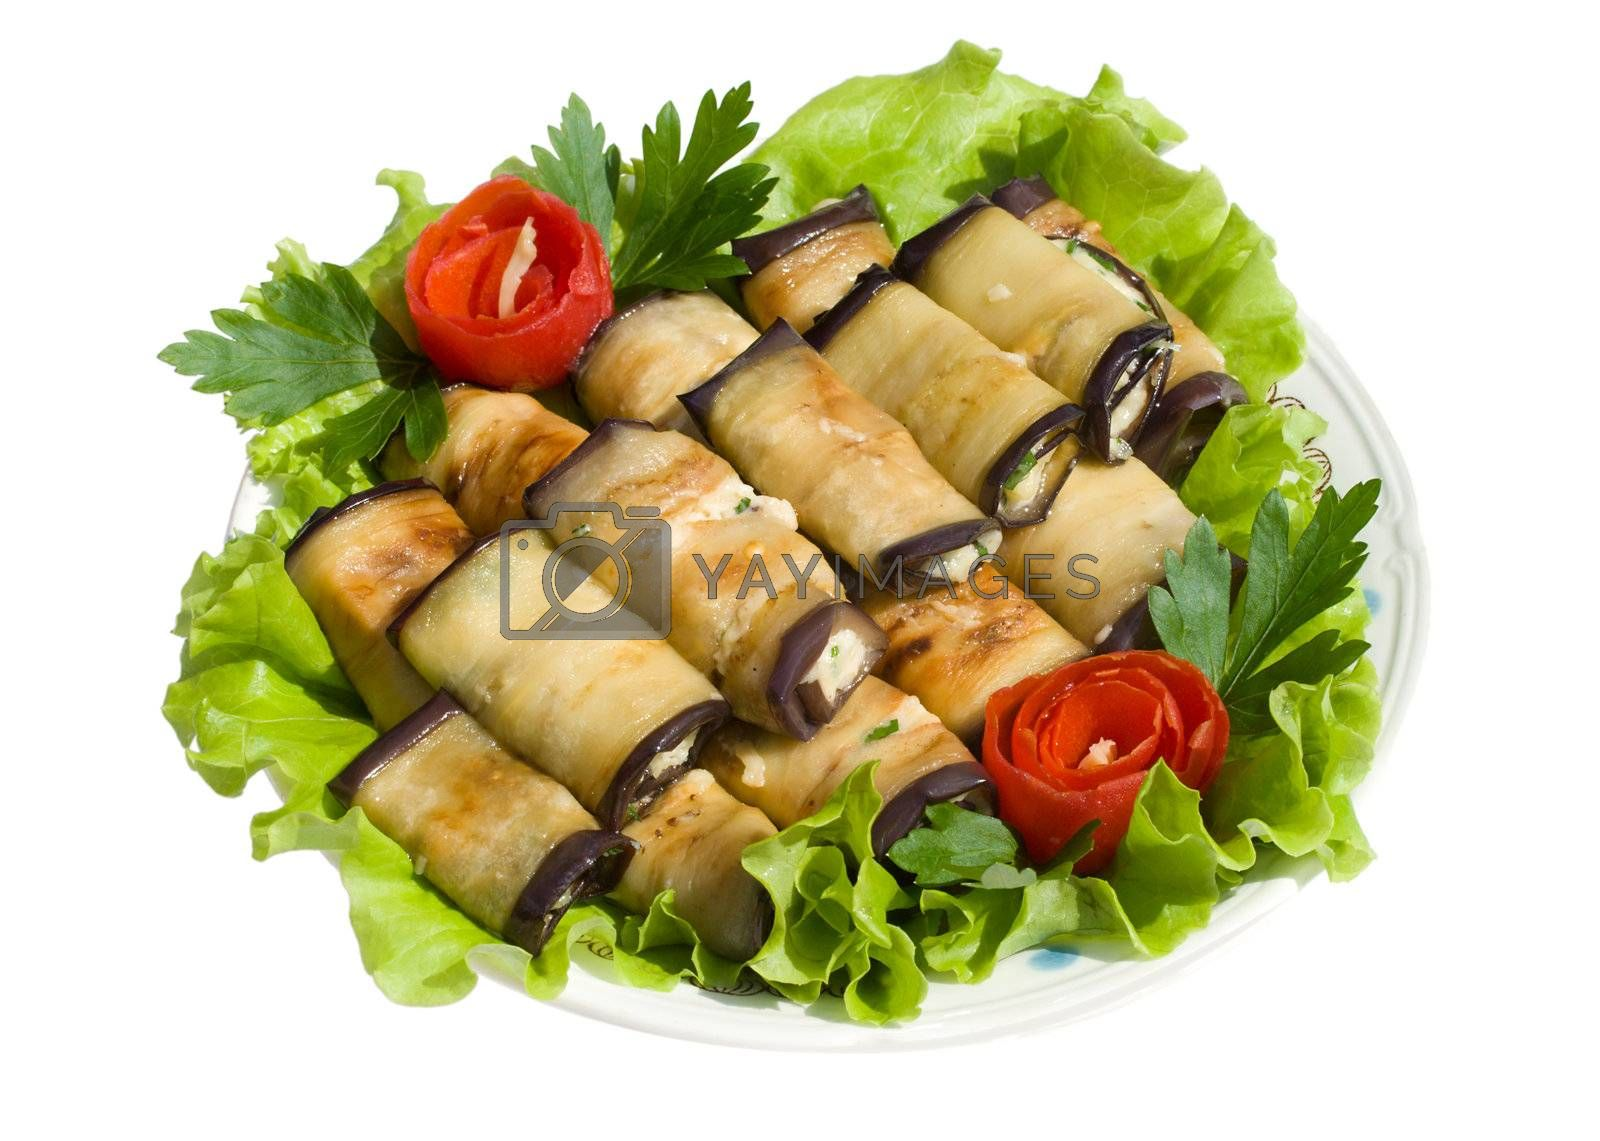 close-up rolls from eggplant on salad leaves